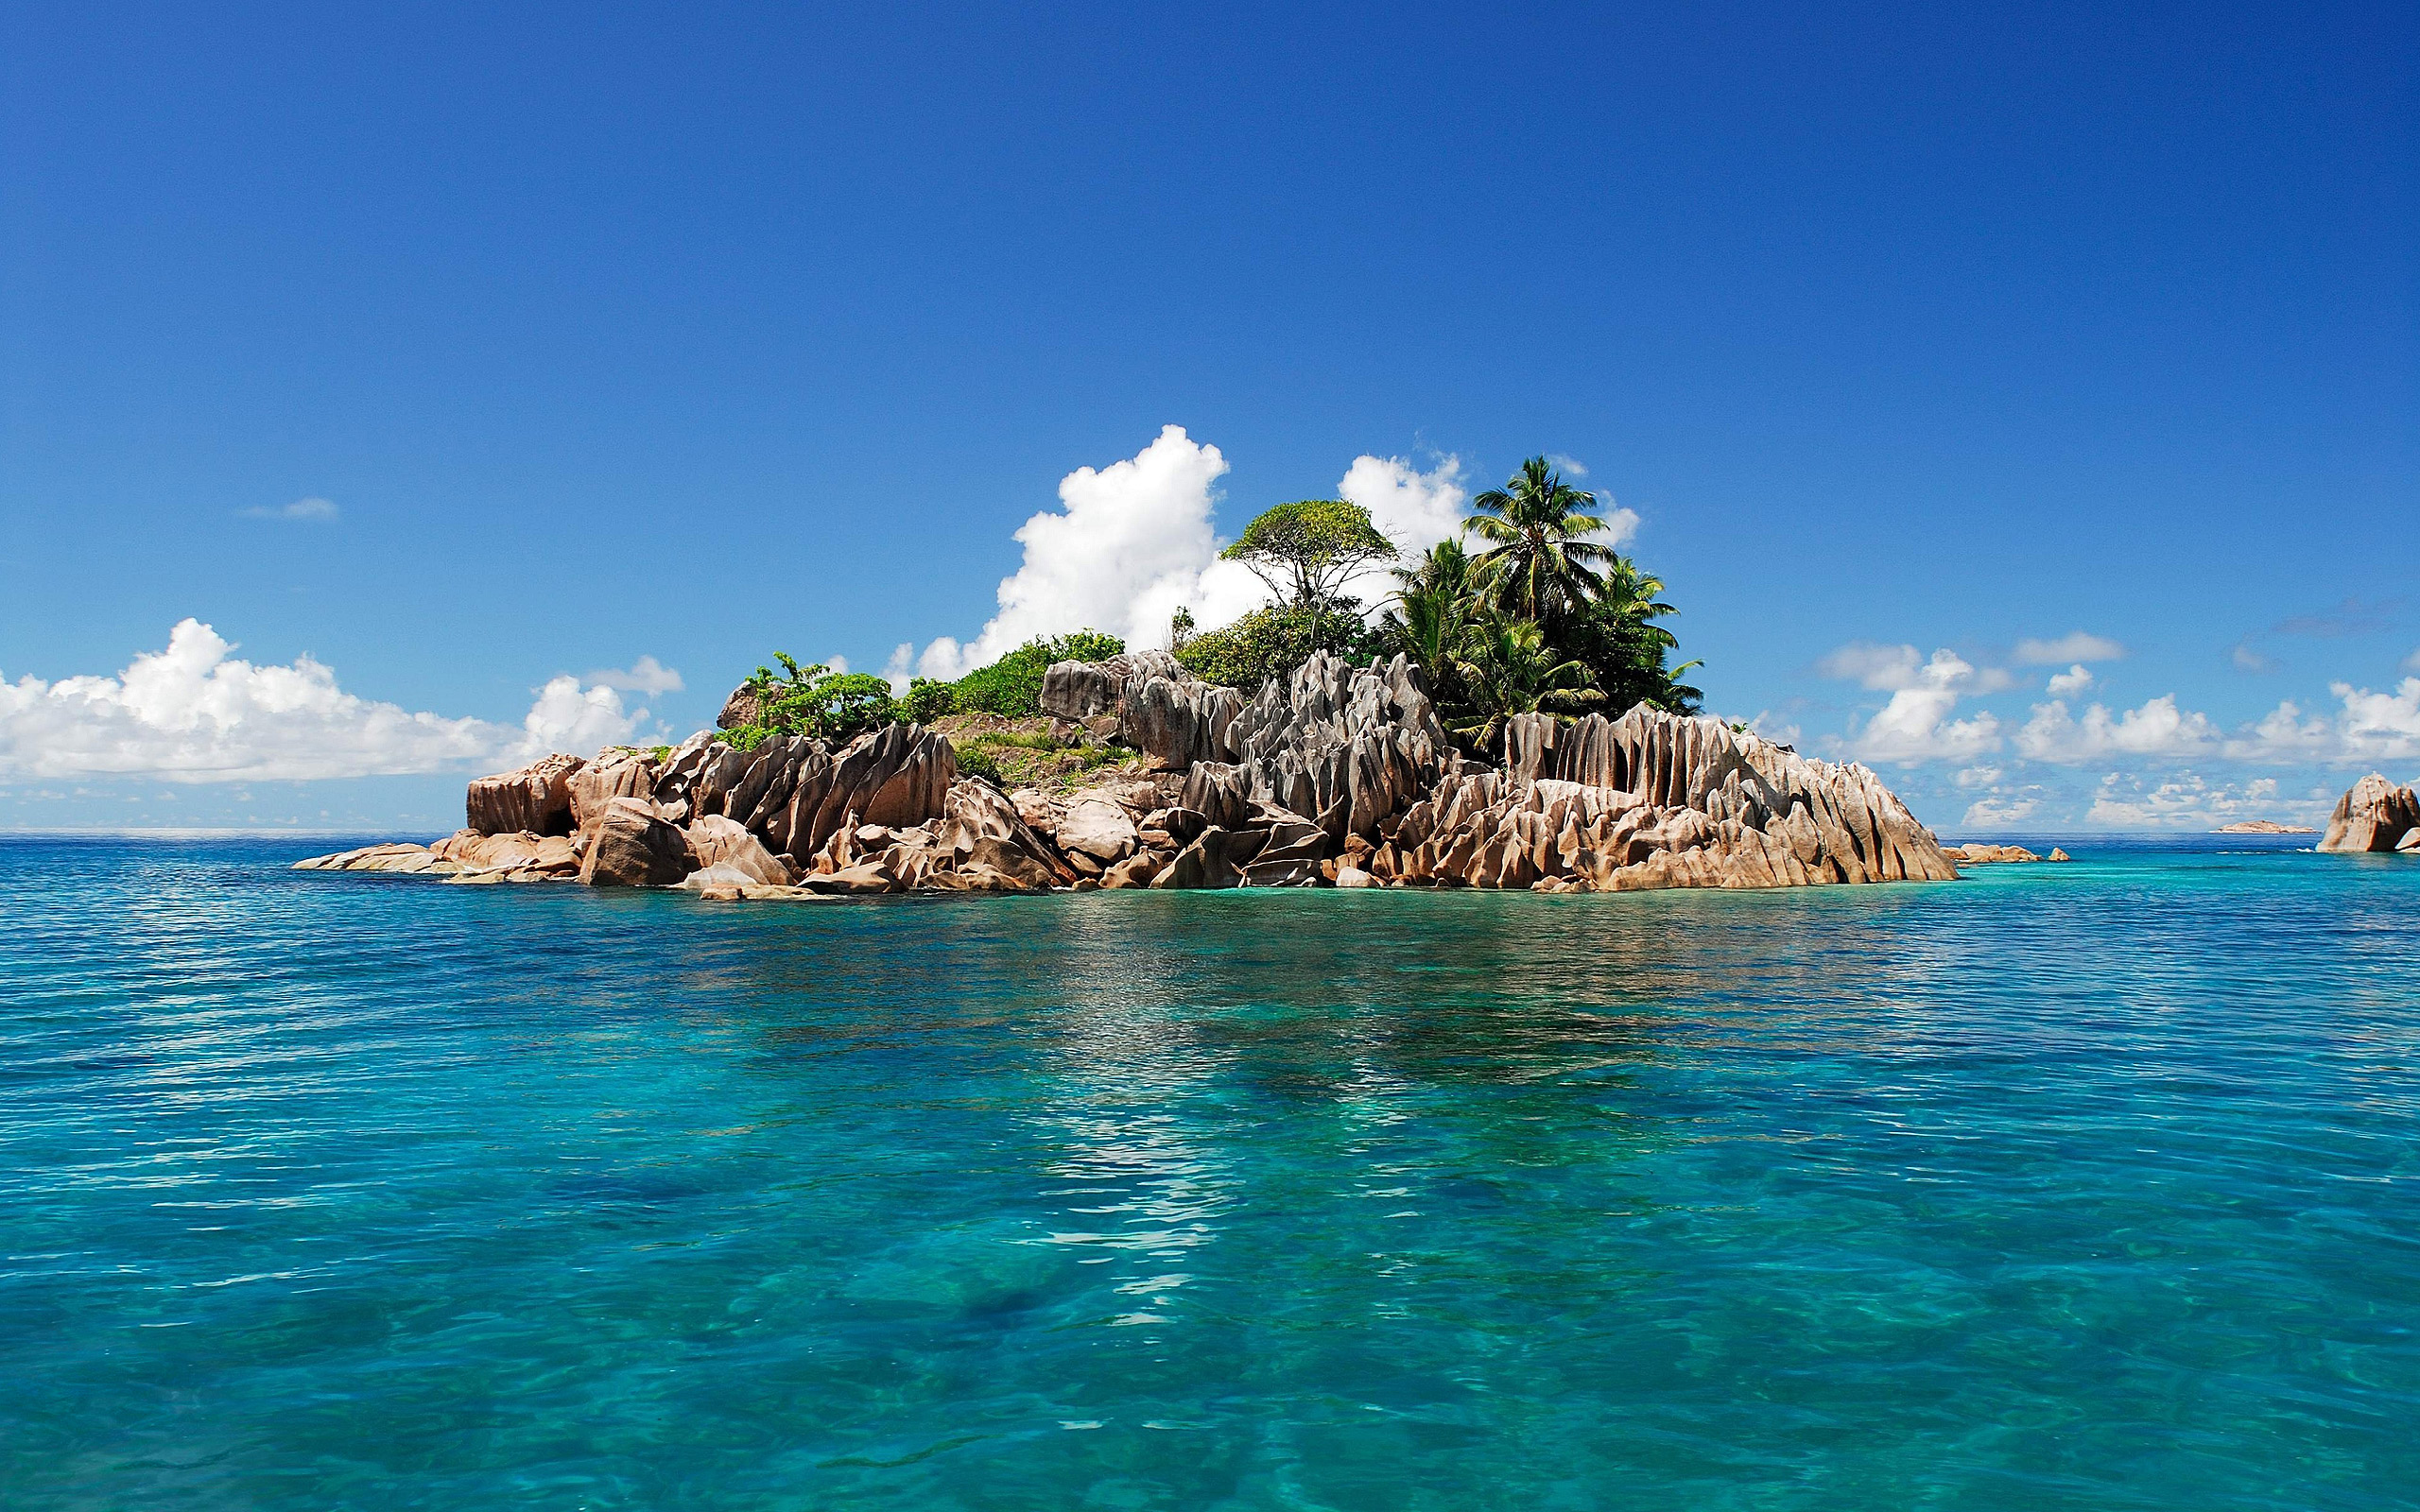 Island with Greenery in Azure Waters